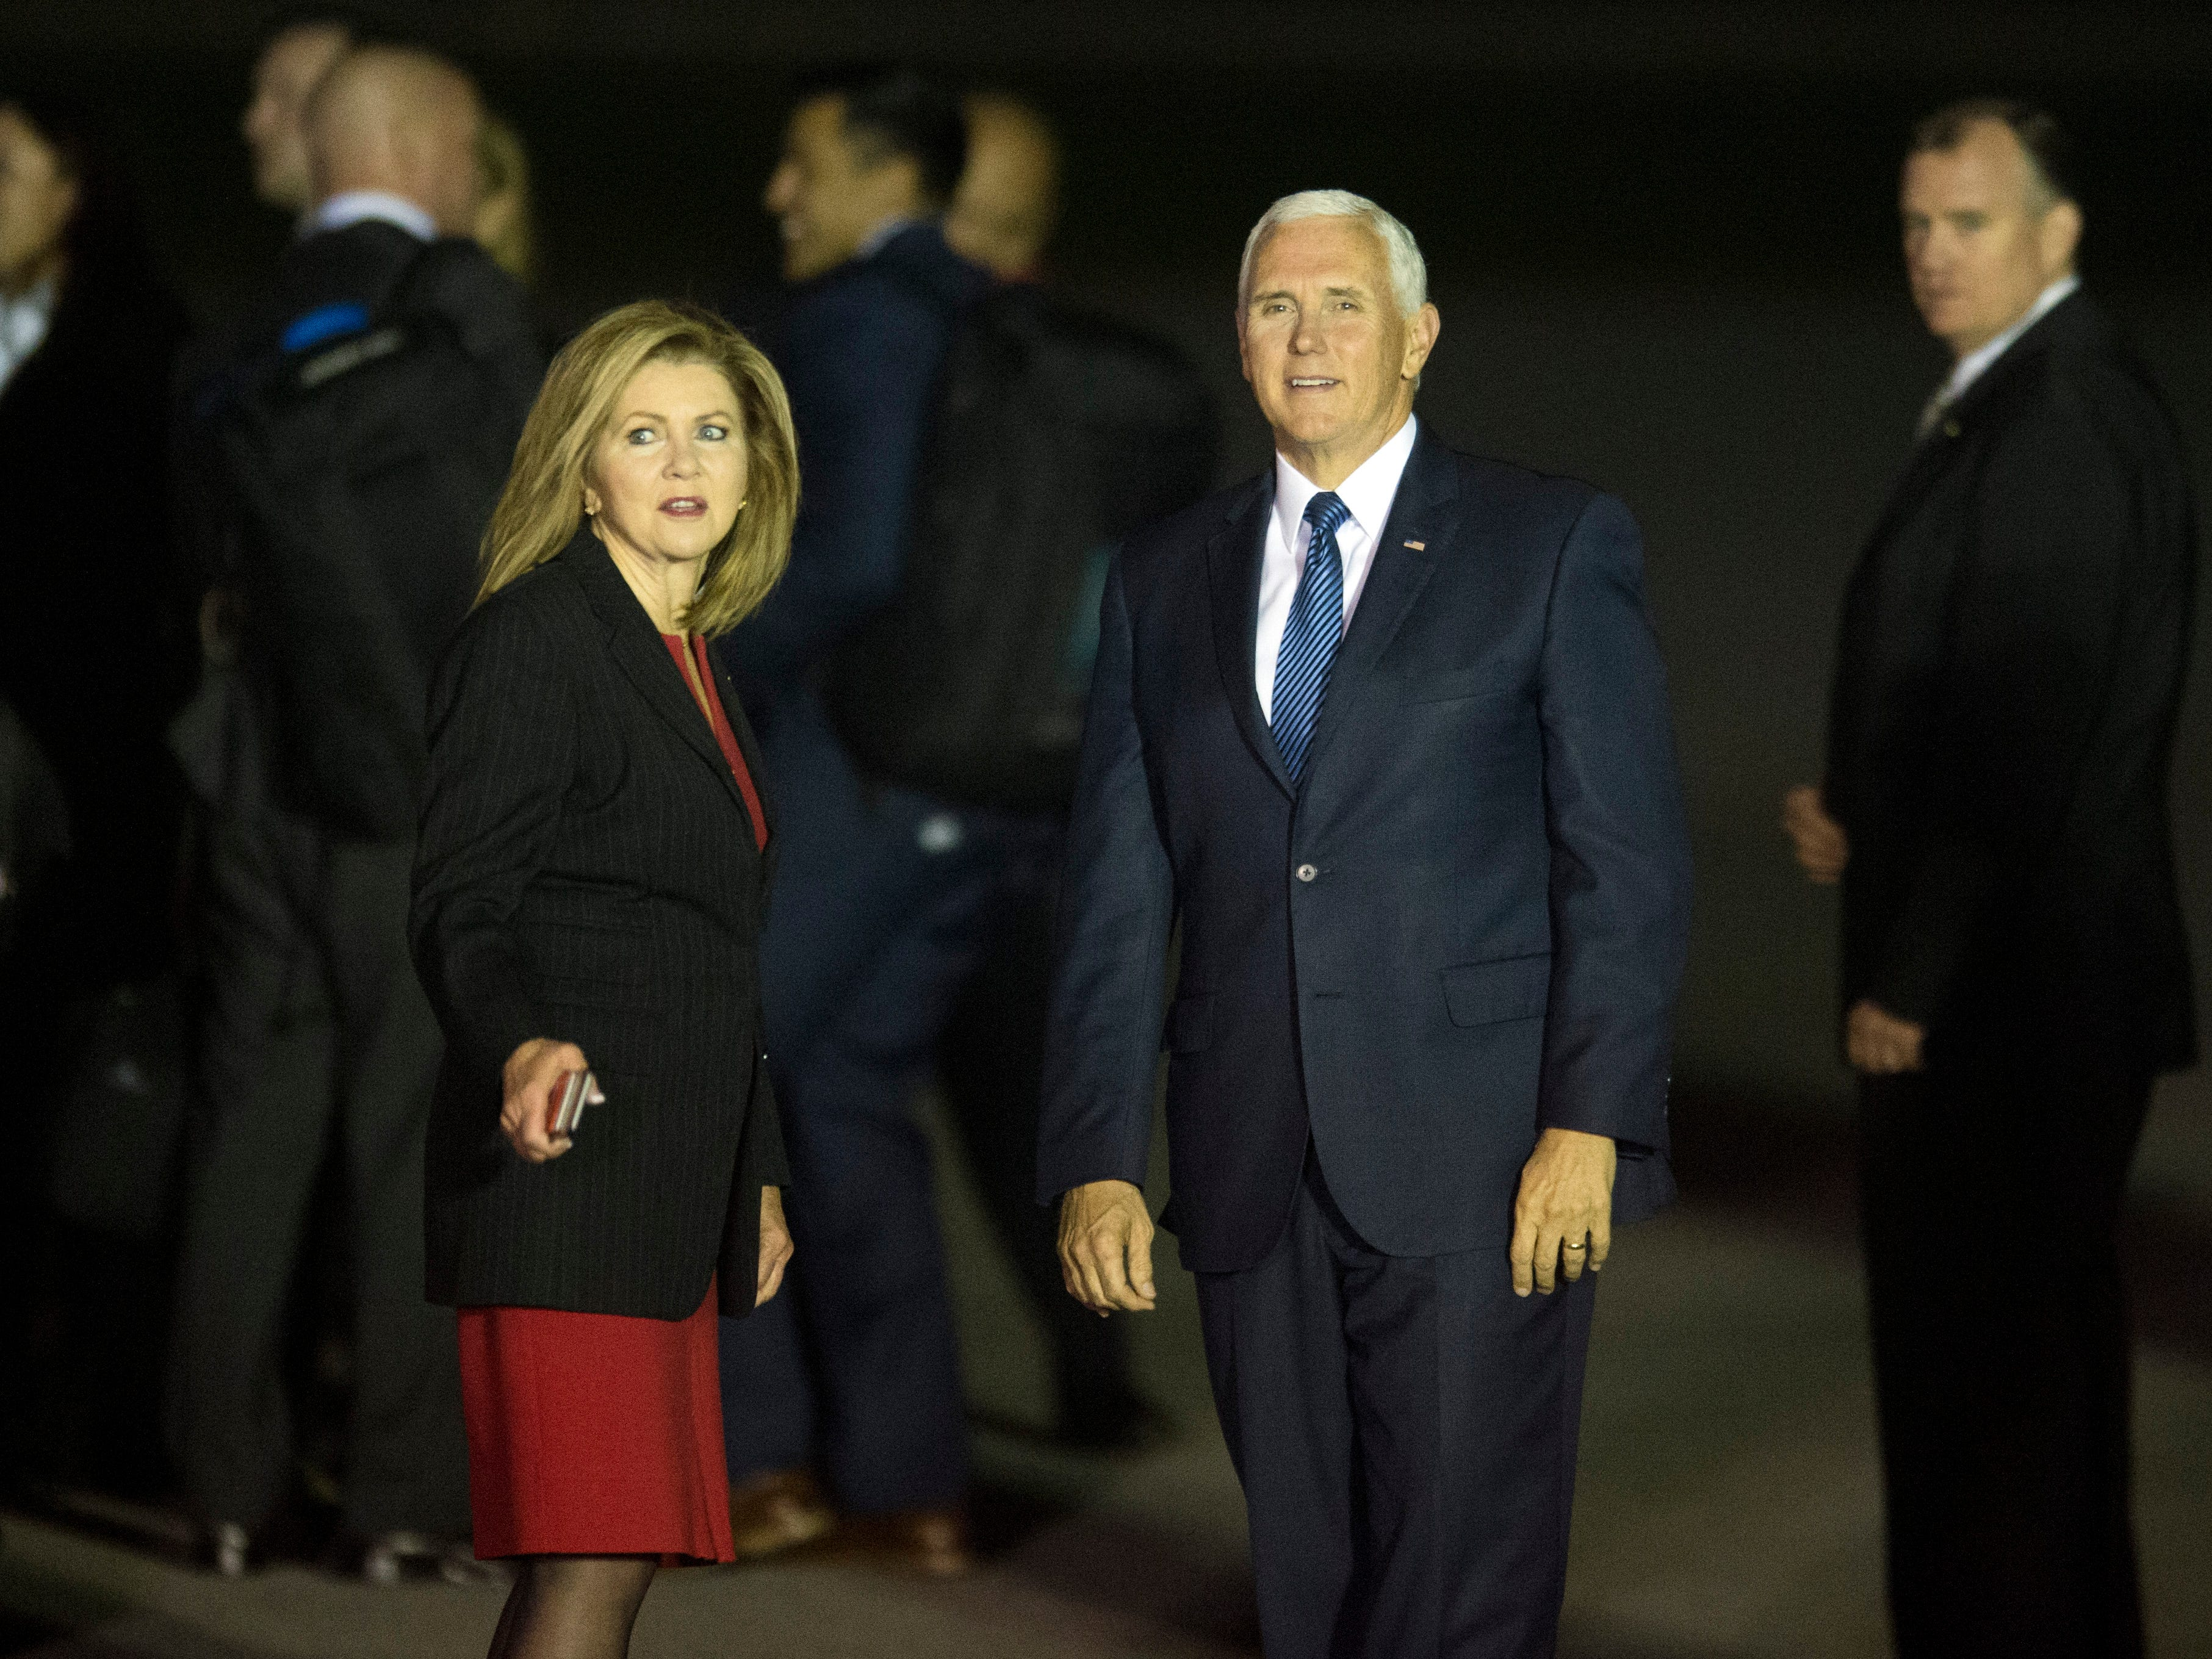 Vice President Mike Pence and Rep. Marsha Blackburn wait for the arrival of of President Donald Trump at Chattanooga Metropolitan Airport on Sunday, November 4, 2018.